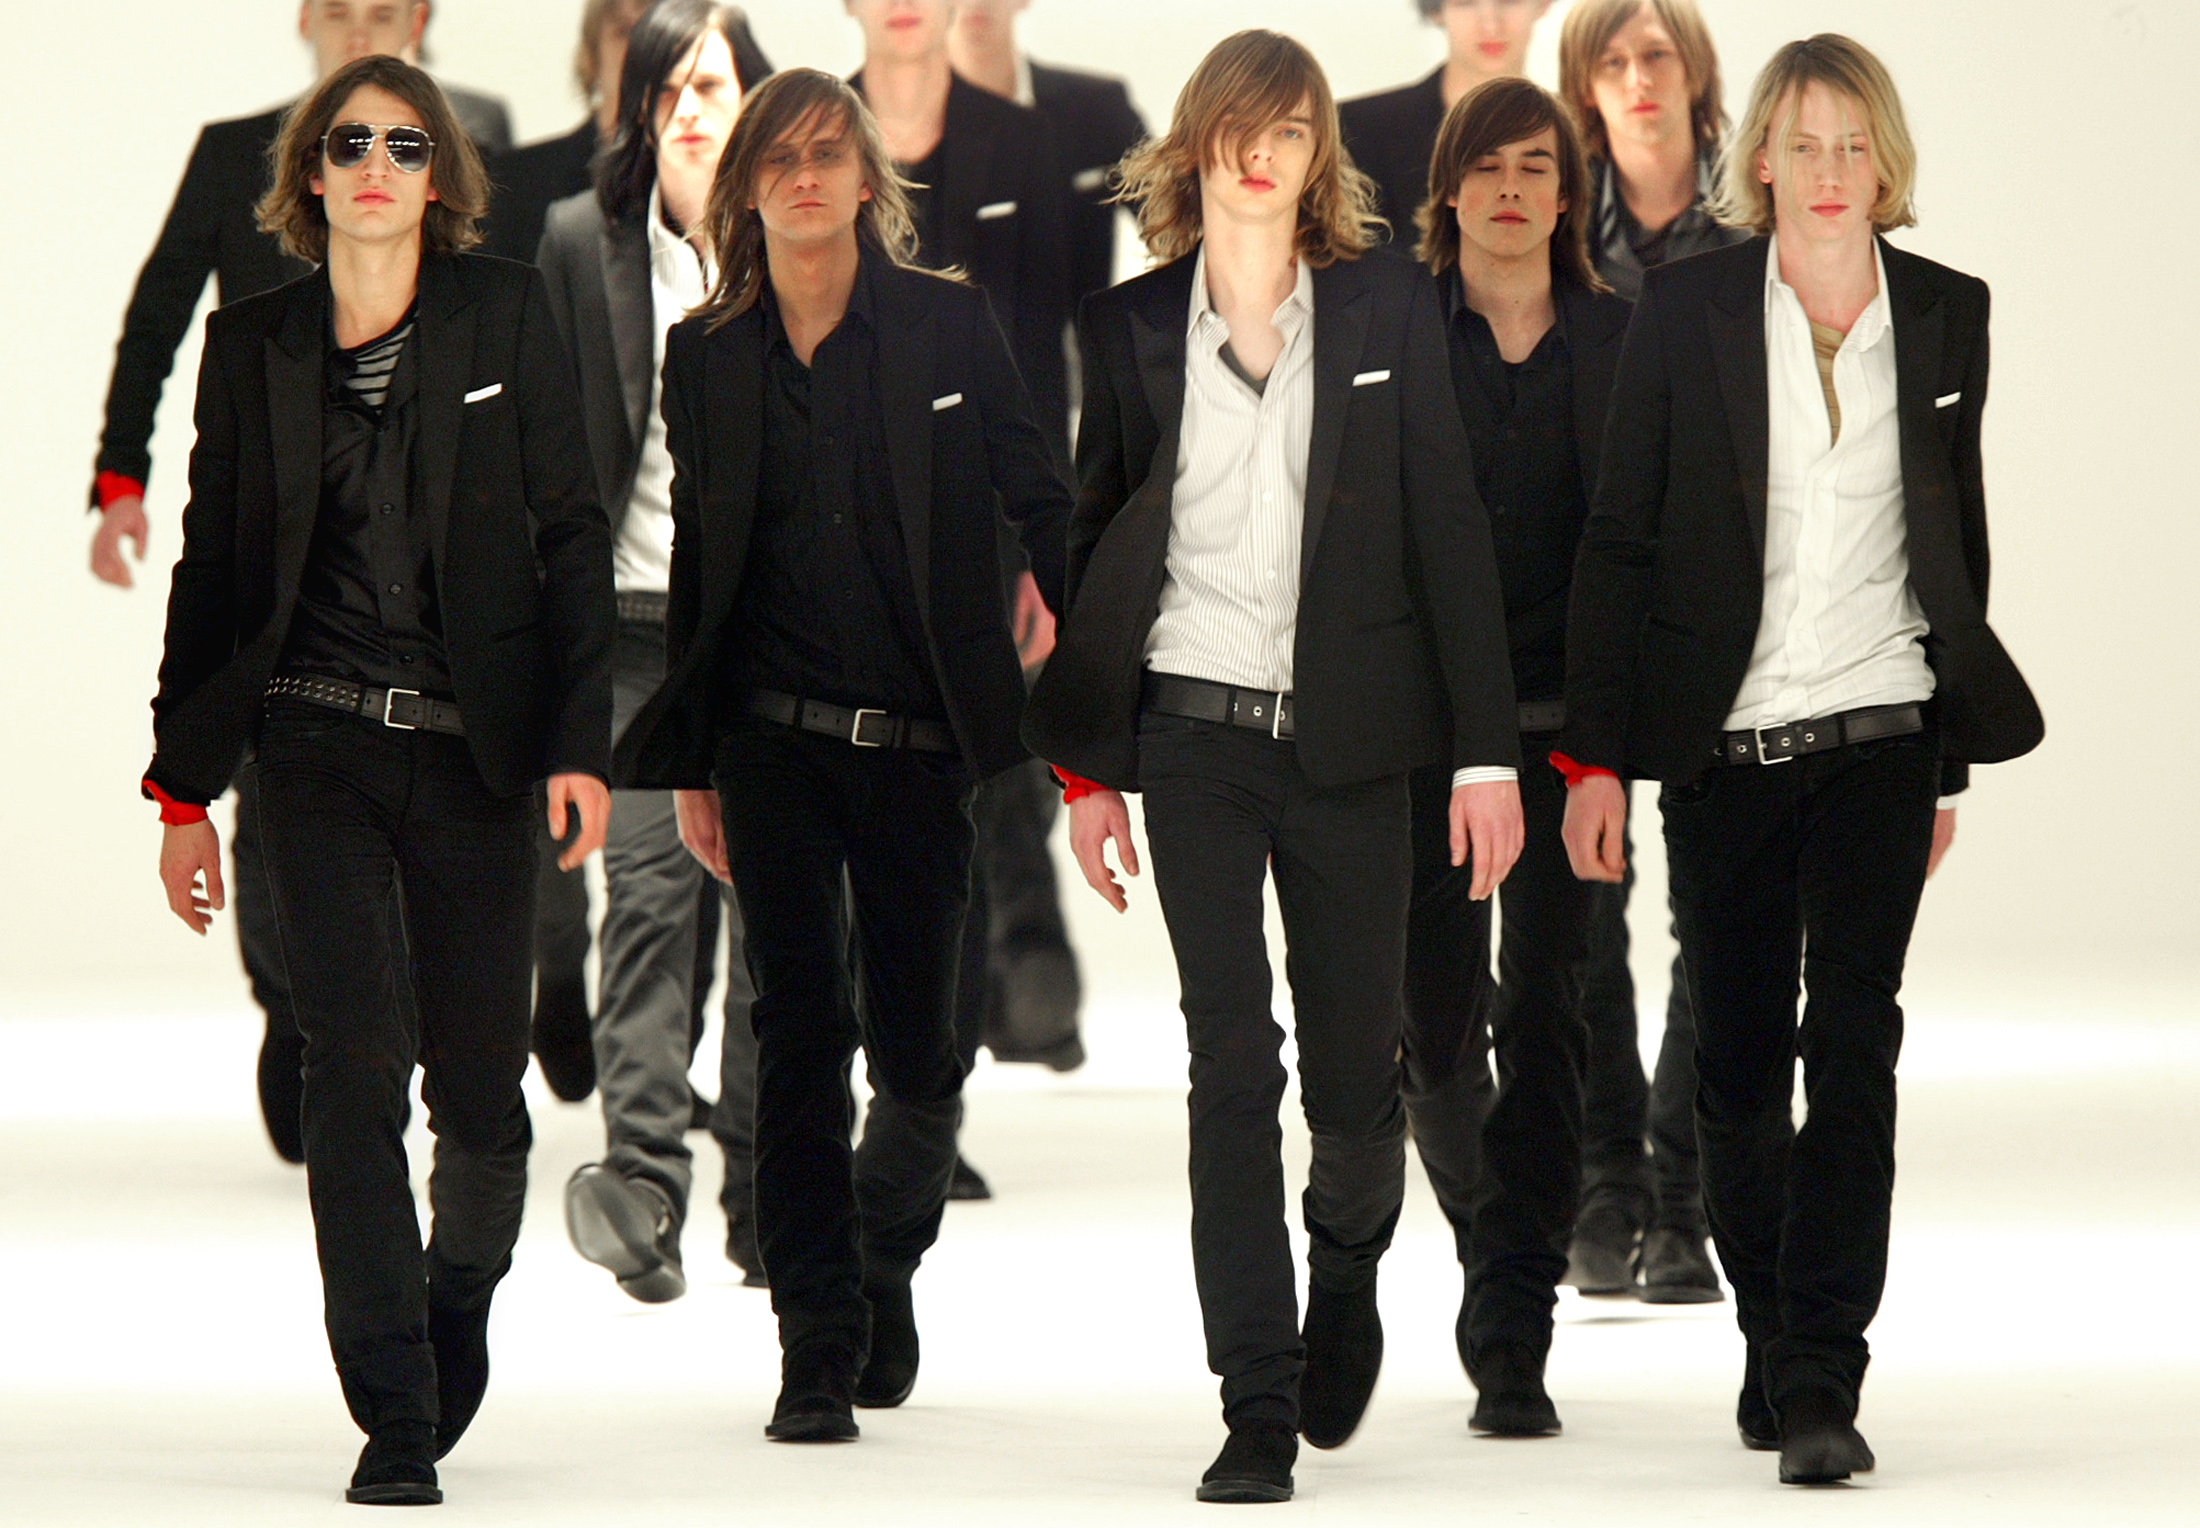 Models display creations by French designer Hedi Slimane as part of the Dior fall winter 2004/2005 men's collection at Paris fashion week, January 26, 2004.